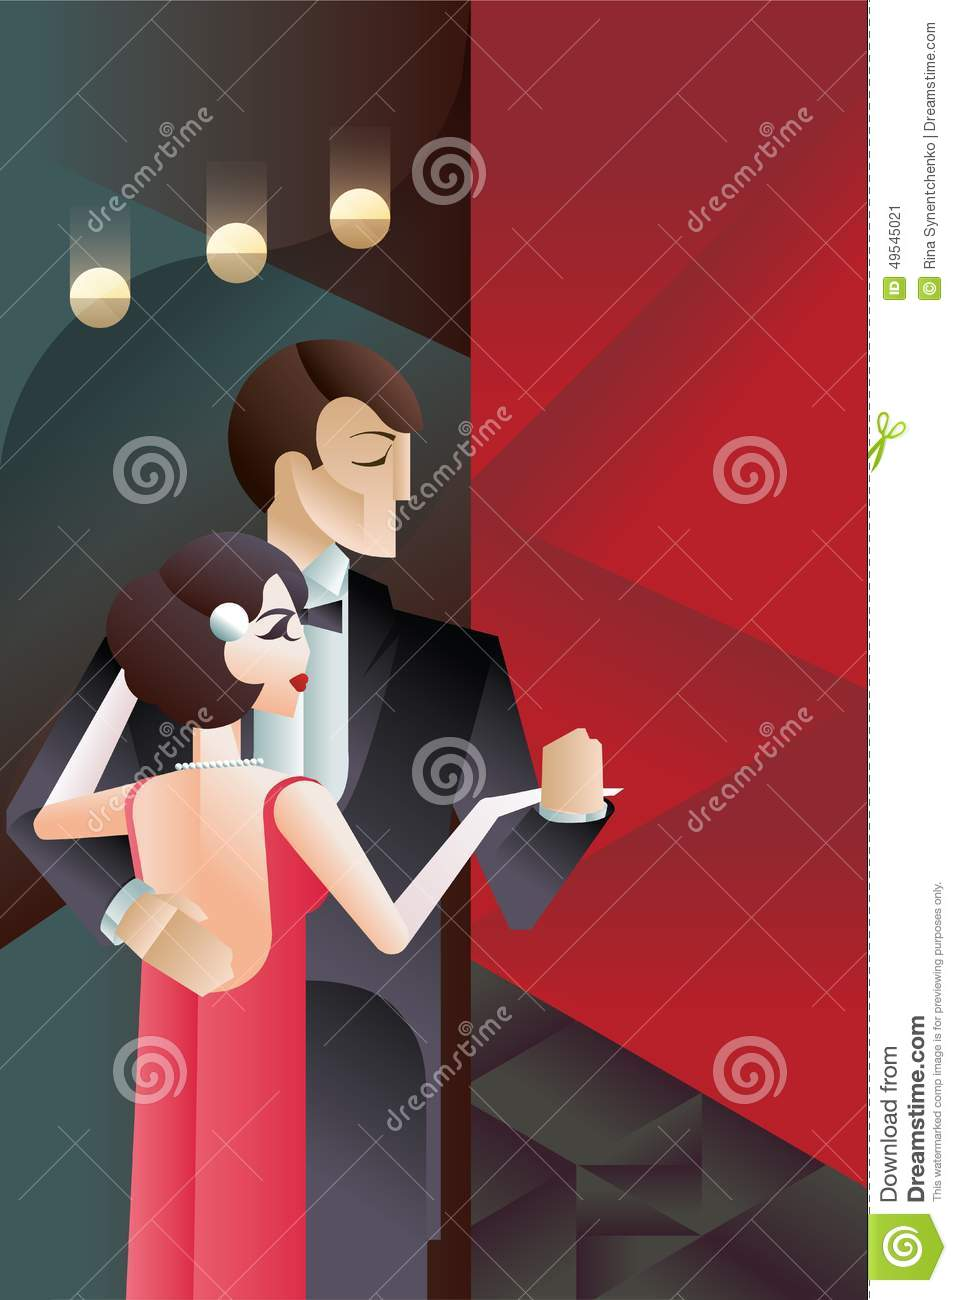 Dancing couple art deco geometric style poster stock for Style retro deco